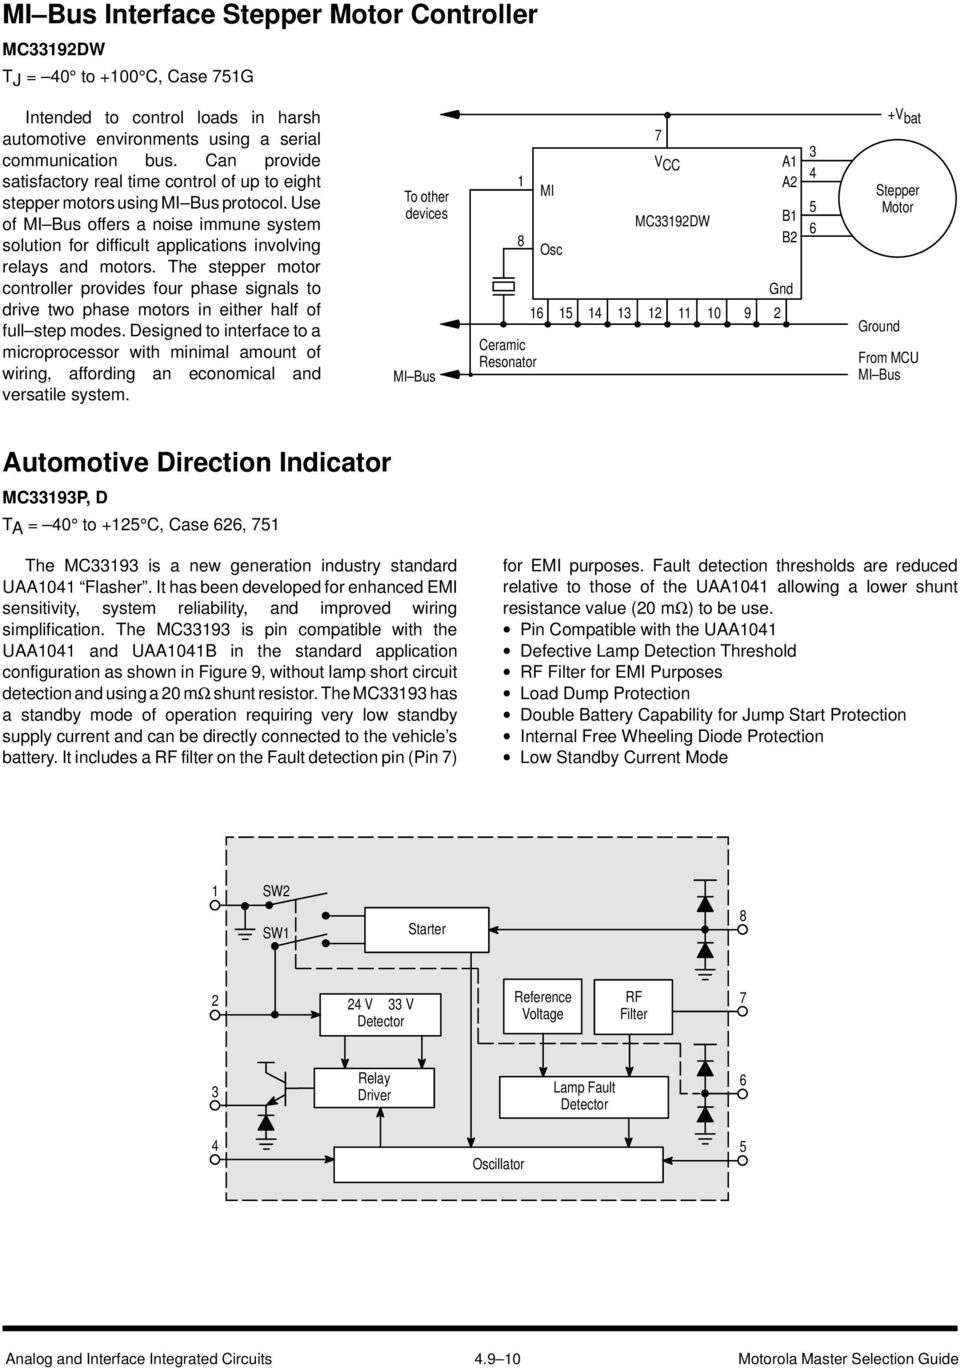 Automotive Electronic Circuits Pdf Uses Of Integrated Use Mi Bus Offers A Noise Immune System Solution For Difficult Applications Involving Relays And